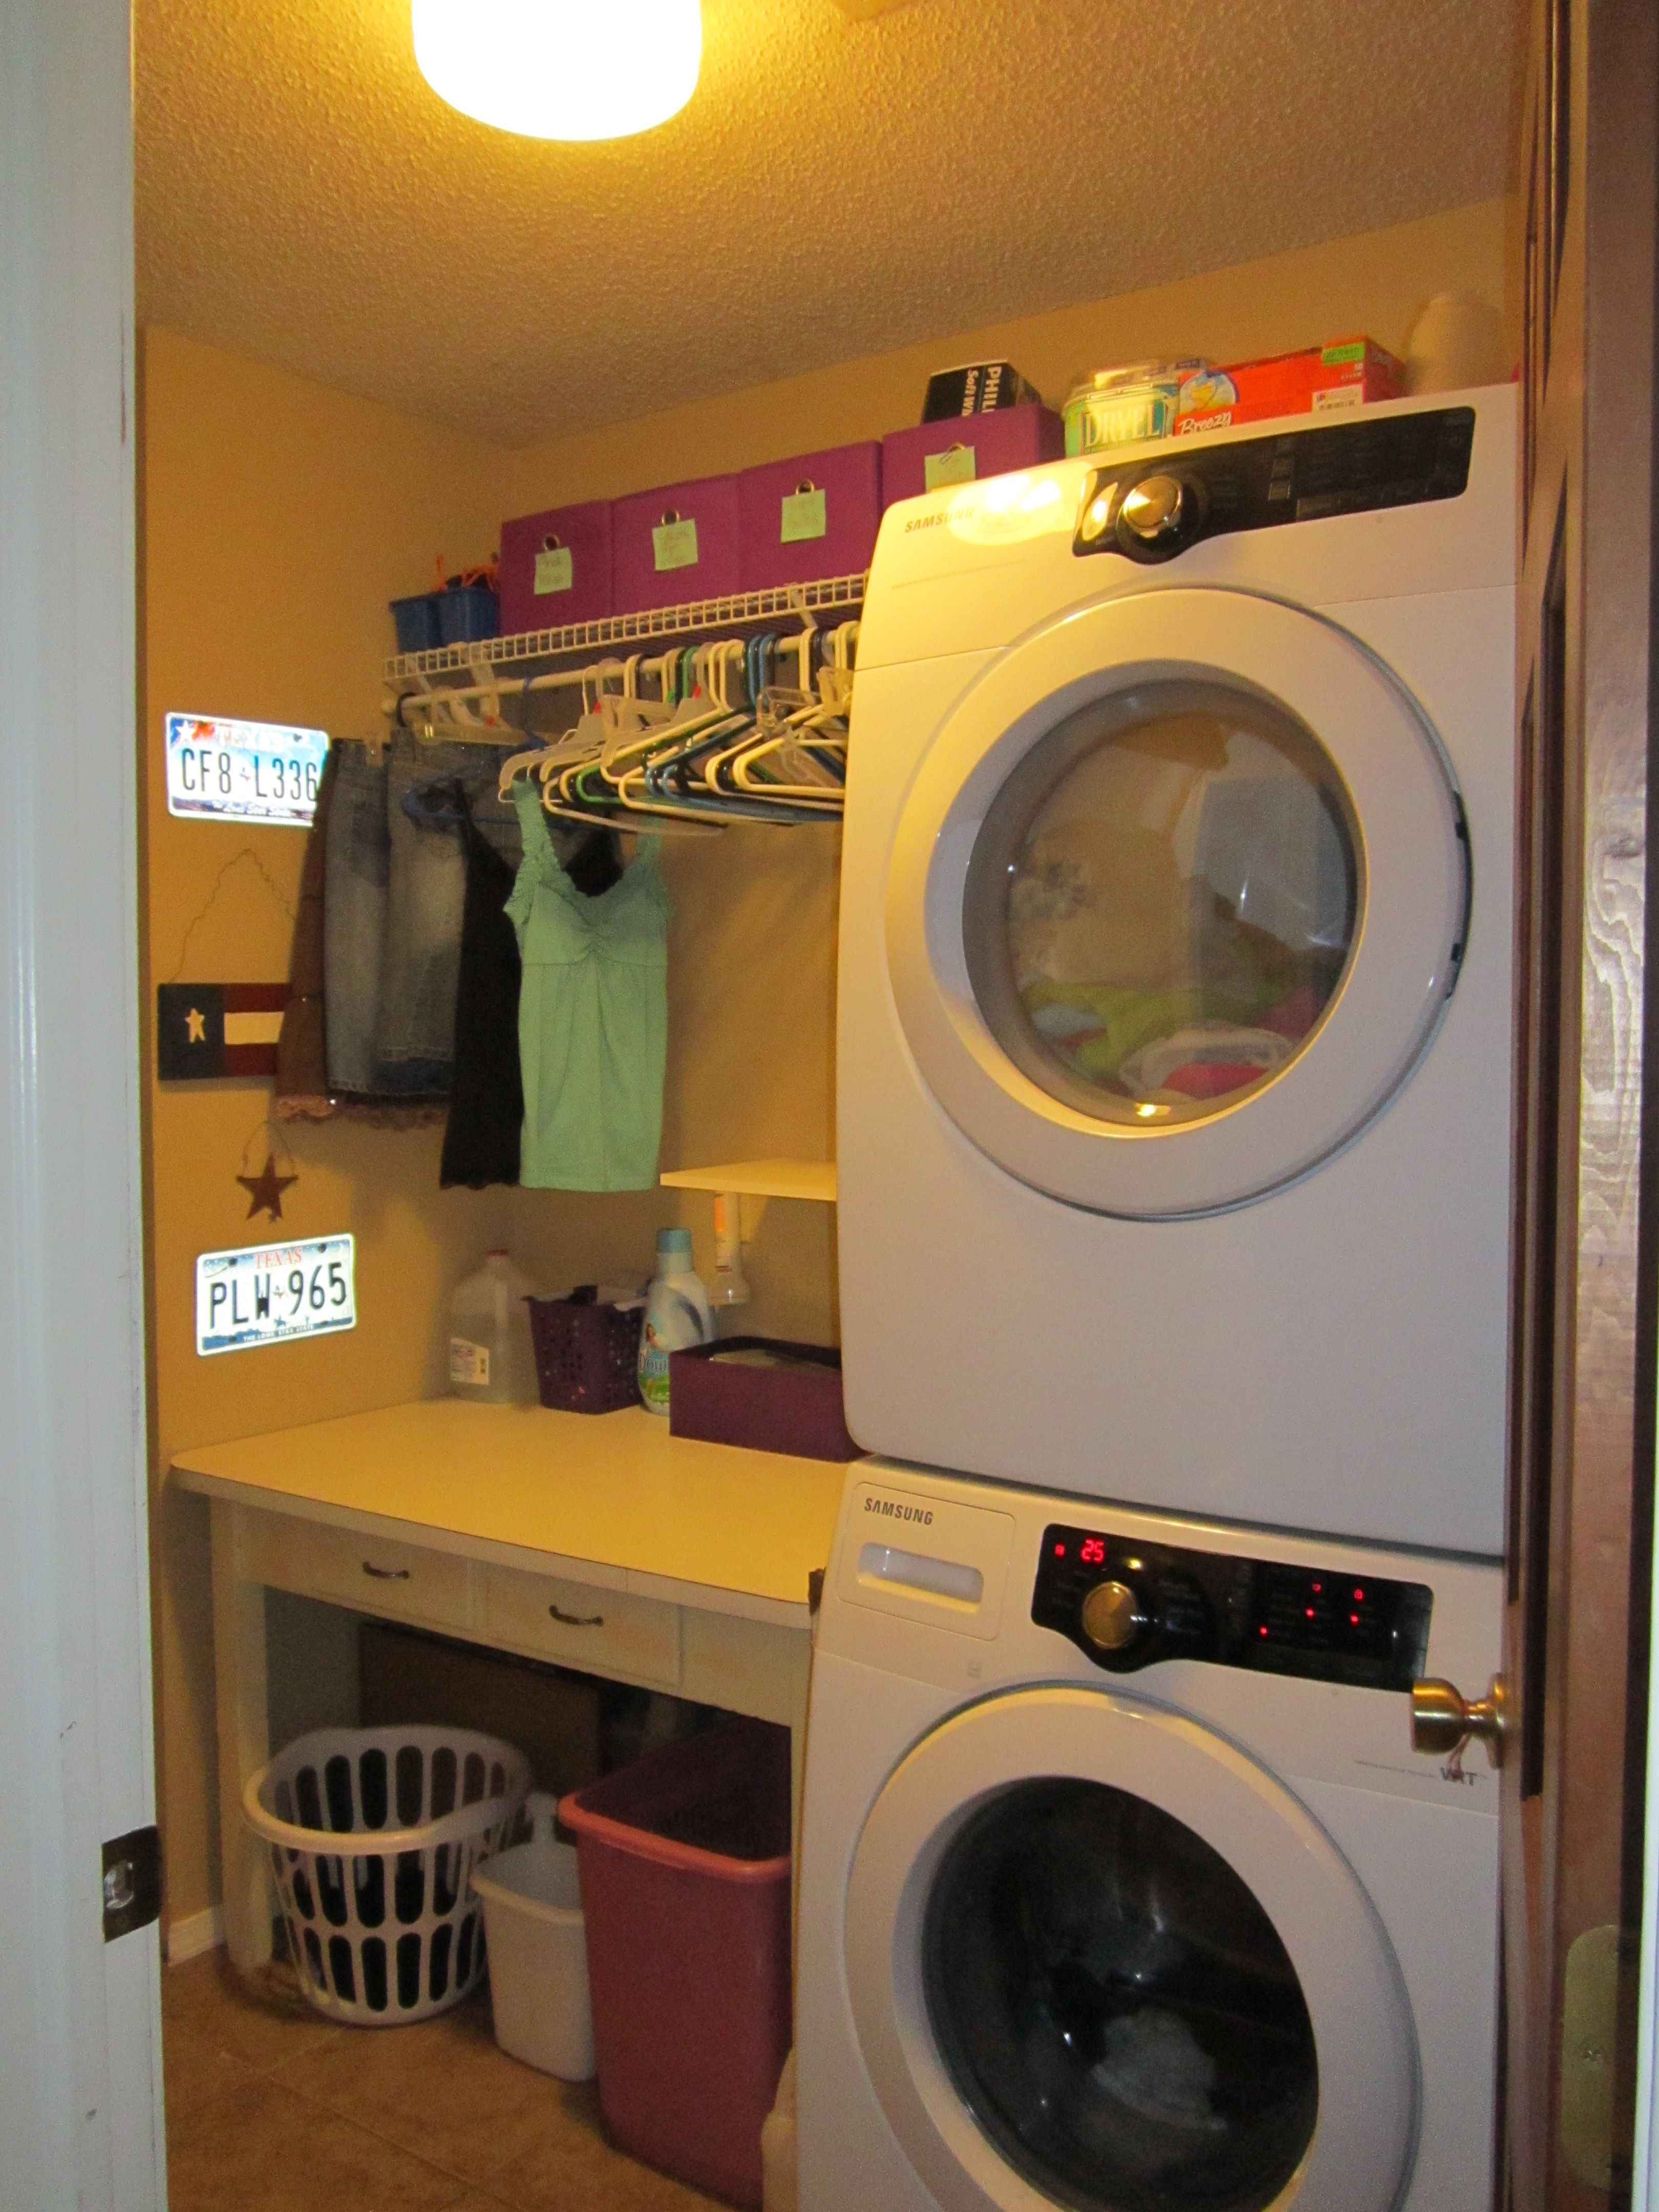 My Laundry Room Is Only 5 X 9ft I Had To Utilize Every Inch Of It I Put A Folding Table With Drawers Room Storage Diy Laundry Room Storage Laundry Storage